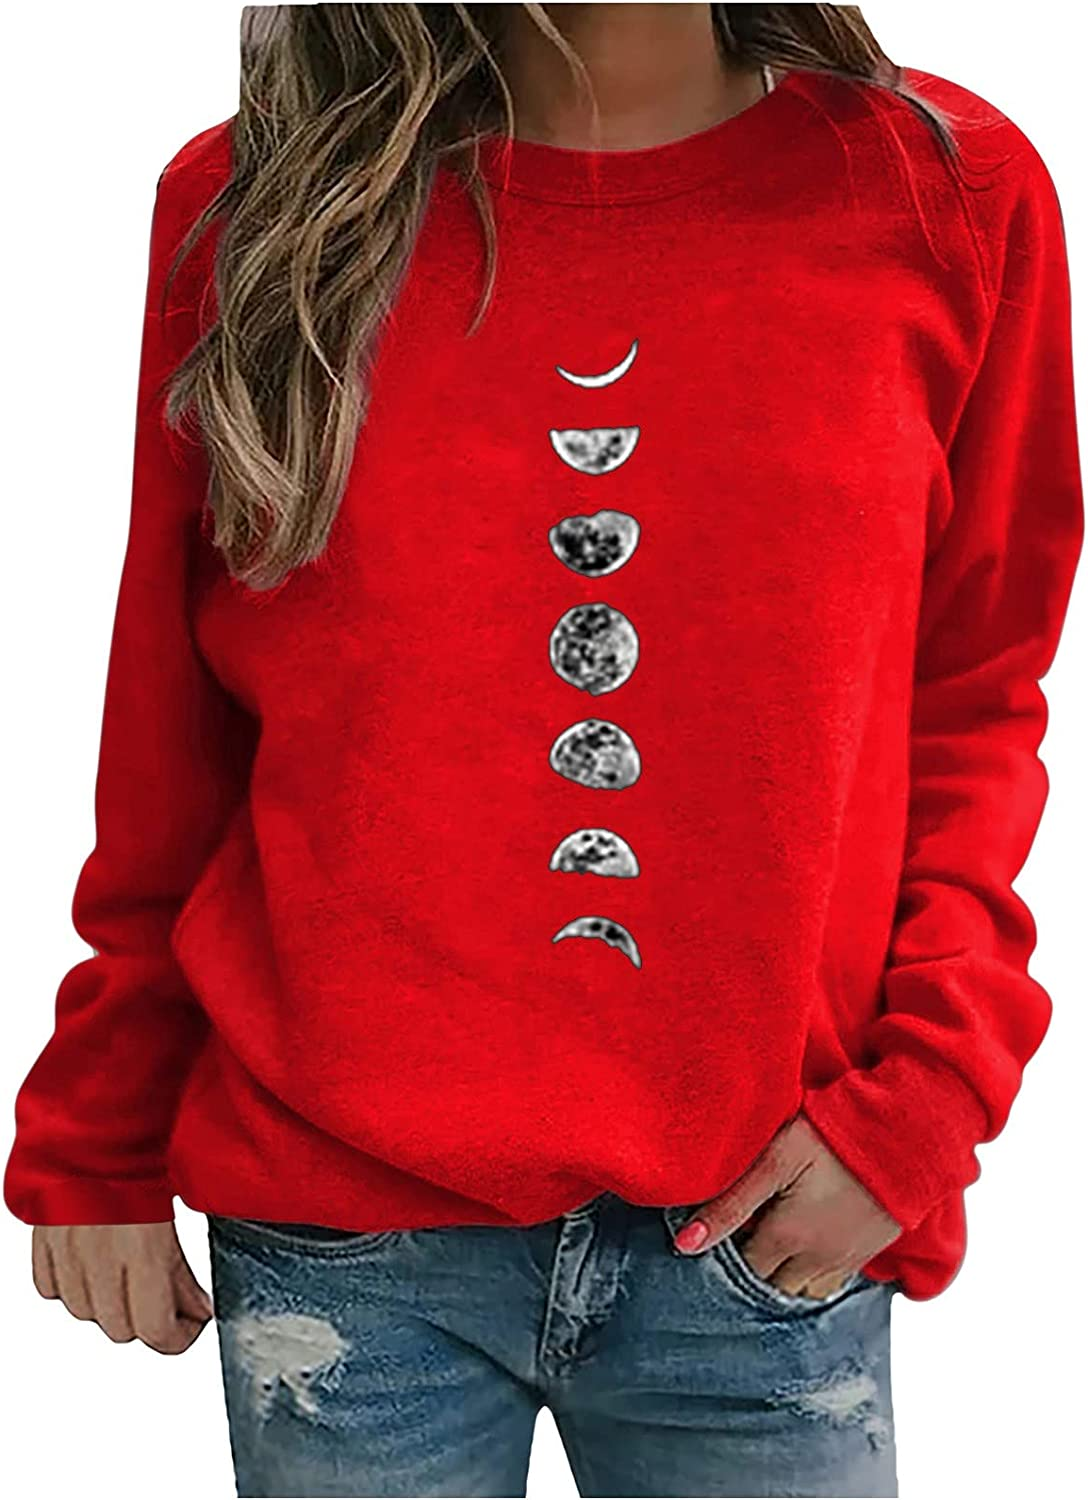 Women's Crewneck Graphic Tees Casual Long Sleeve Sweatshirts Loose Fit Blouses Lightweight Pullover Fall Fashion Tops